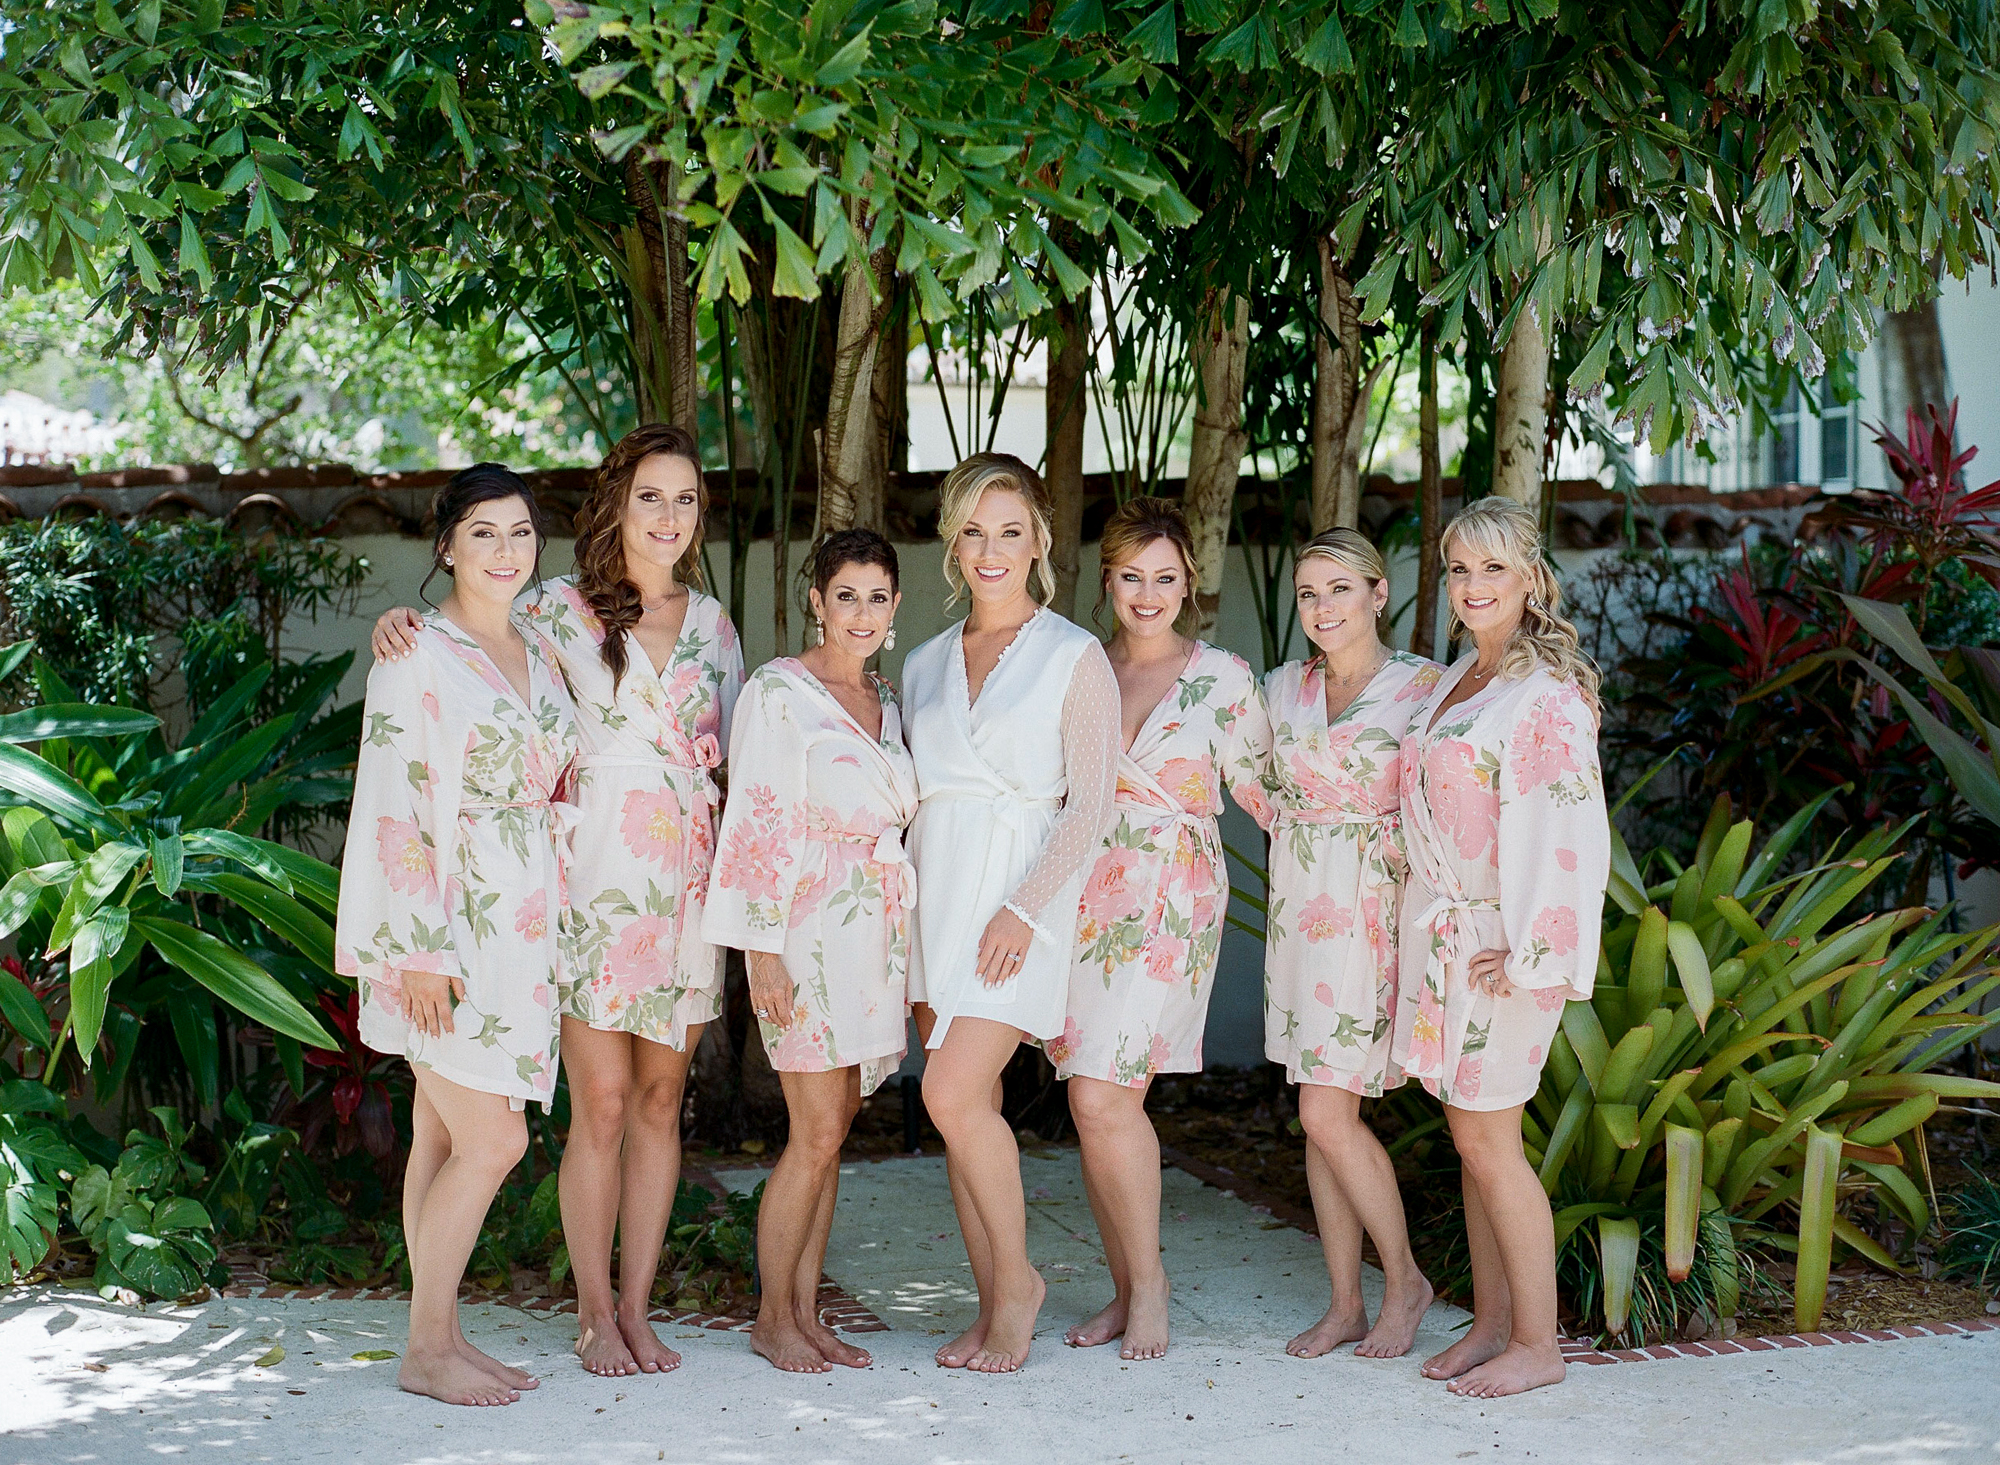 Bride stands and smiles outside with bridal party in their matching blush and floral robes.